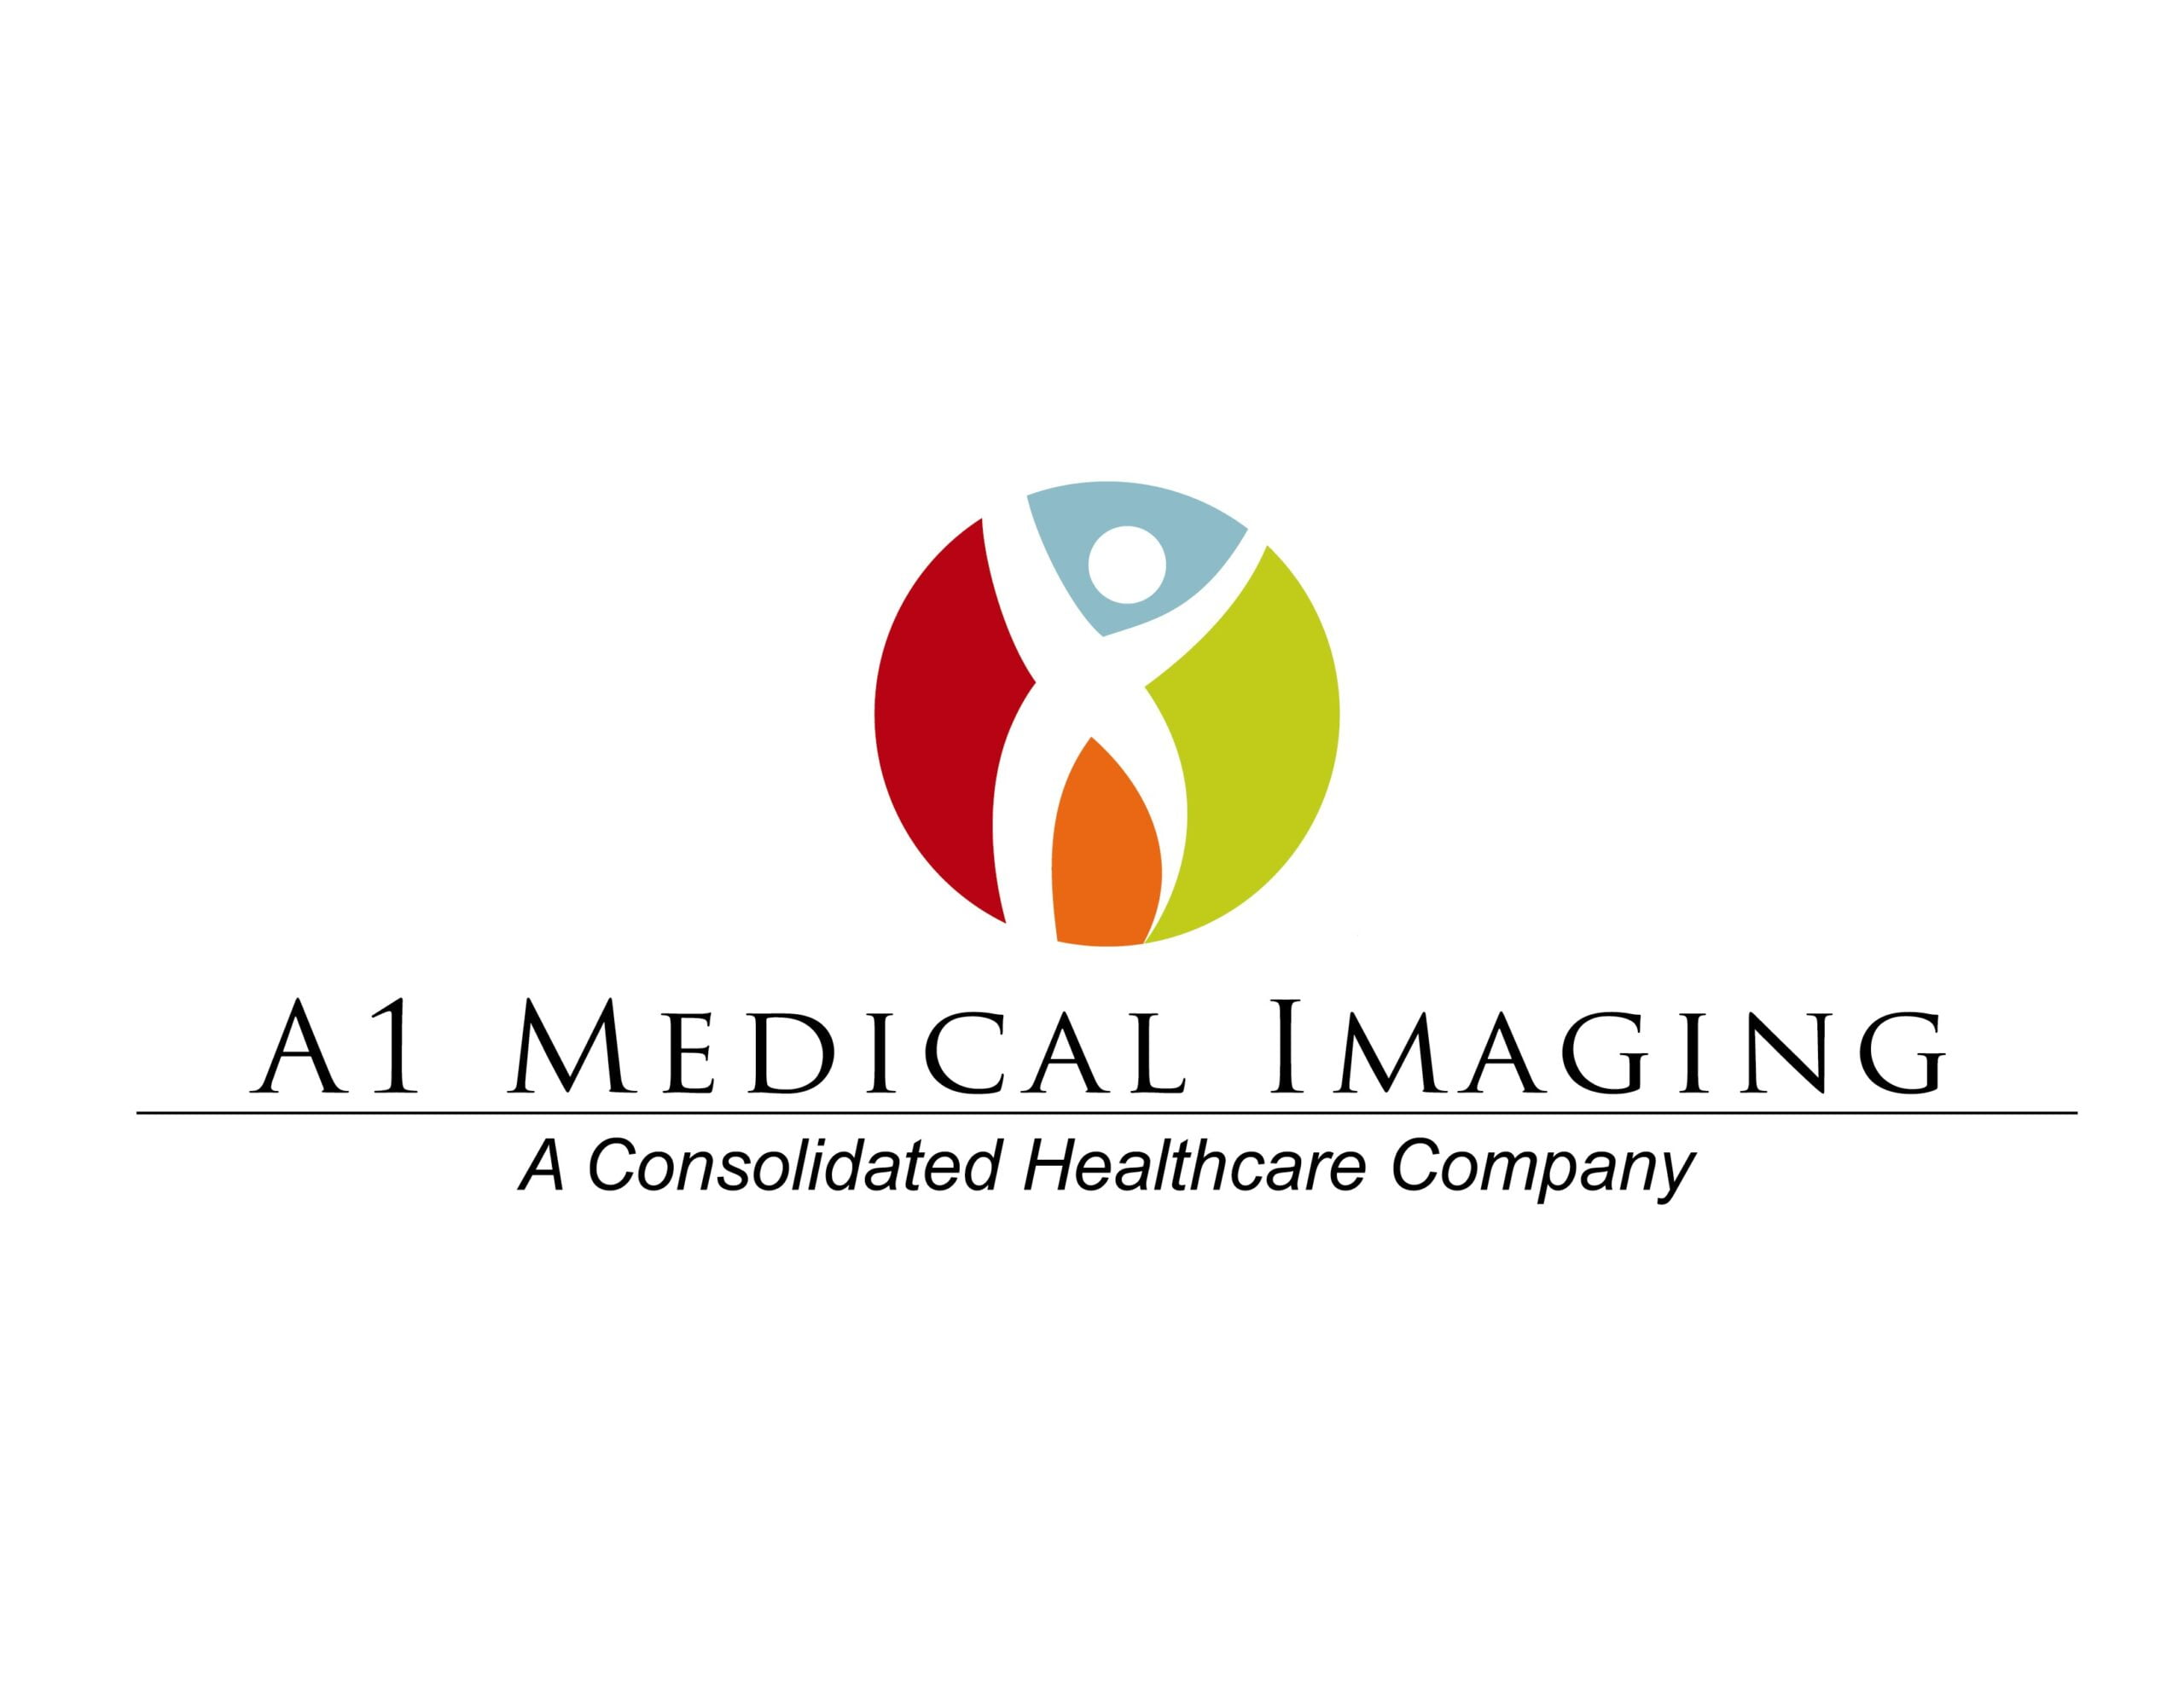 A1 Medical Imaging to Be Part of Artificial Intelligence Software Development for Medical Diagnostic Imaging Industry